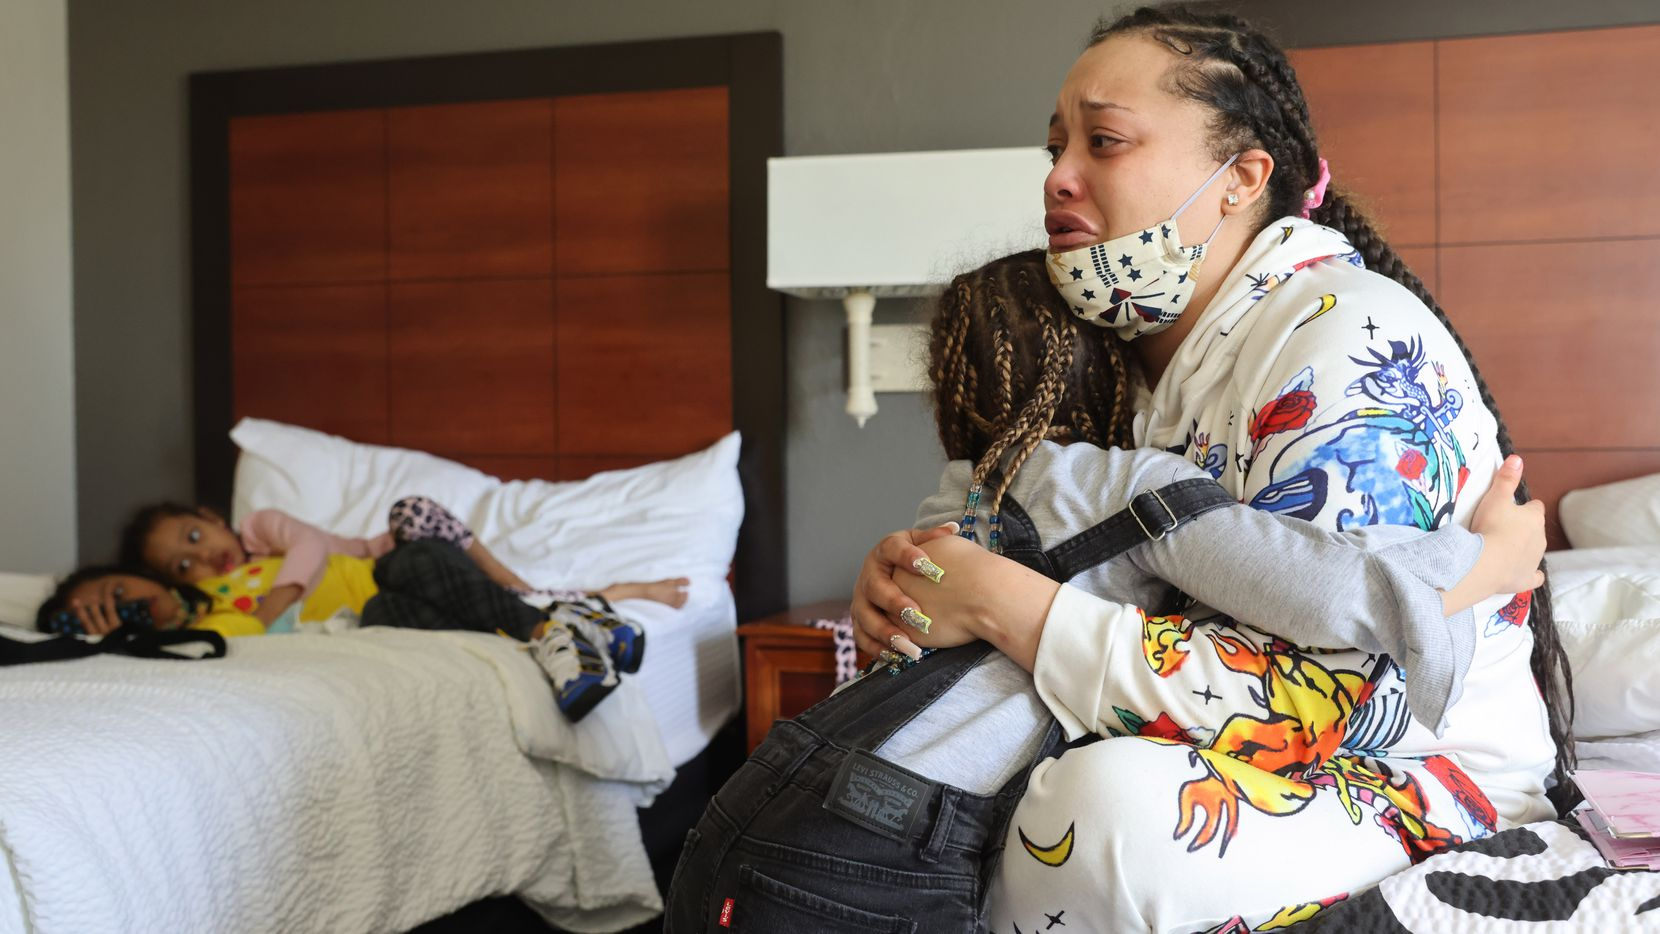 Jonnay Mckinley gets a hug from her oldest daughter, Yannoj Young, 8 as Mckinley talks about her recent eviction from her apartment while her other daughters Courtney Young, 7 and Trinity Young, 5 play with her phone inside a hotel room on Monday, February 1, 2021 in Dallas. Mckinley and her kids were evicted from her apartment Friday morning.